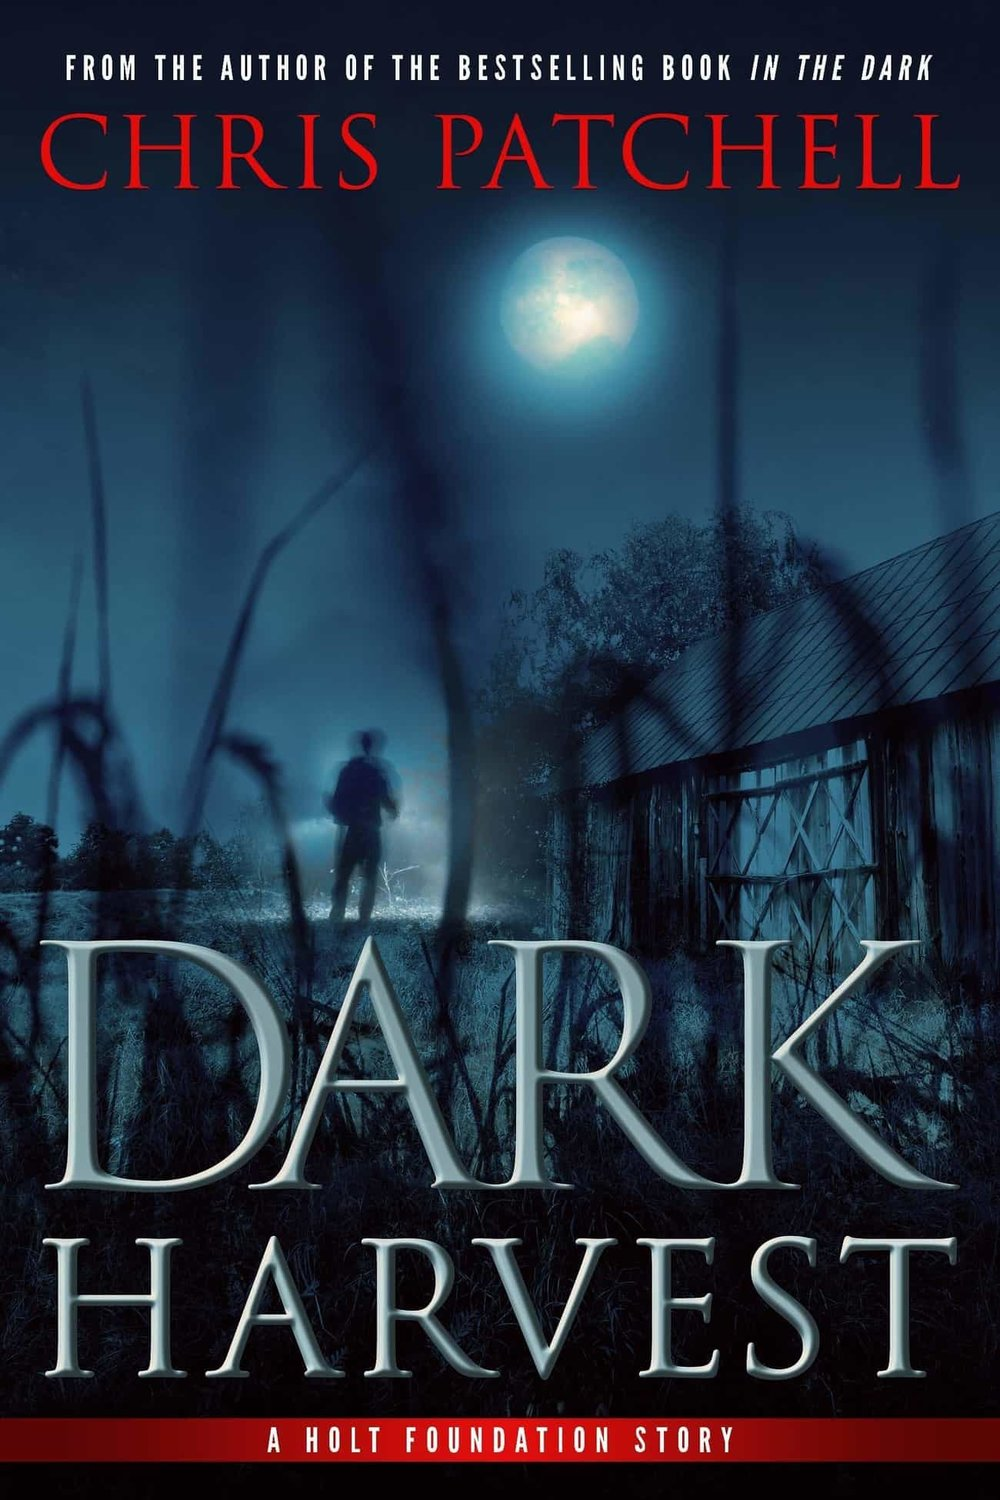 Dark Harvest - Becky Kincaid ventures out in the middle of a snowstorm to buy a car seat for her unborn baby and never makes it home. When a second pregnant woman disappears, Marissa Rooney and the team at the Holt Foundation fear a sinister motive lurks behind the crimes.Lead investigator, Seth Crawford, desperately searches for the thread that binds the two cases together, knowing that if he fails, another woman will soon be gone. While Seth hunts for clues, a madman has Marissa in his sights and she carries a secret that could tear her whole world apart.Can Seth stop the killer before he reaps his...Dark Harvest